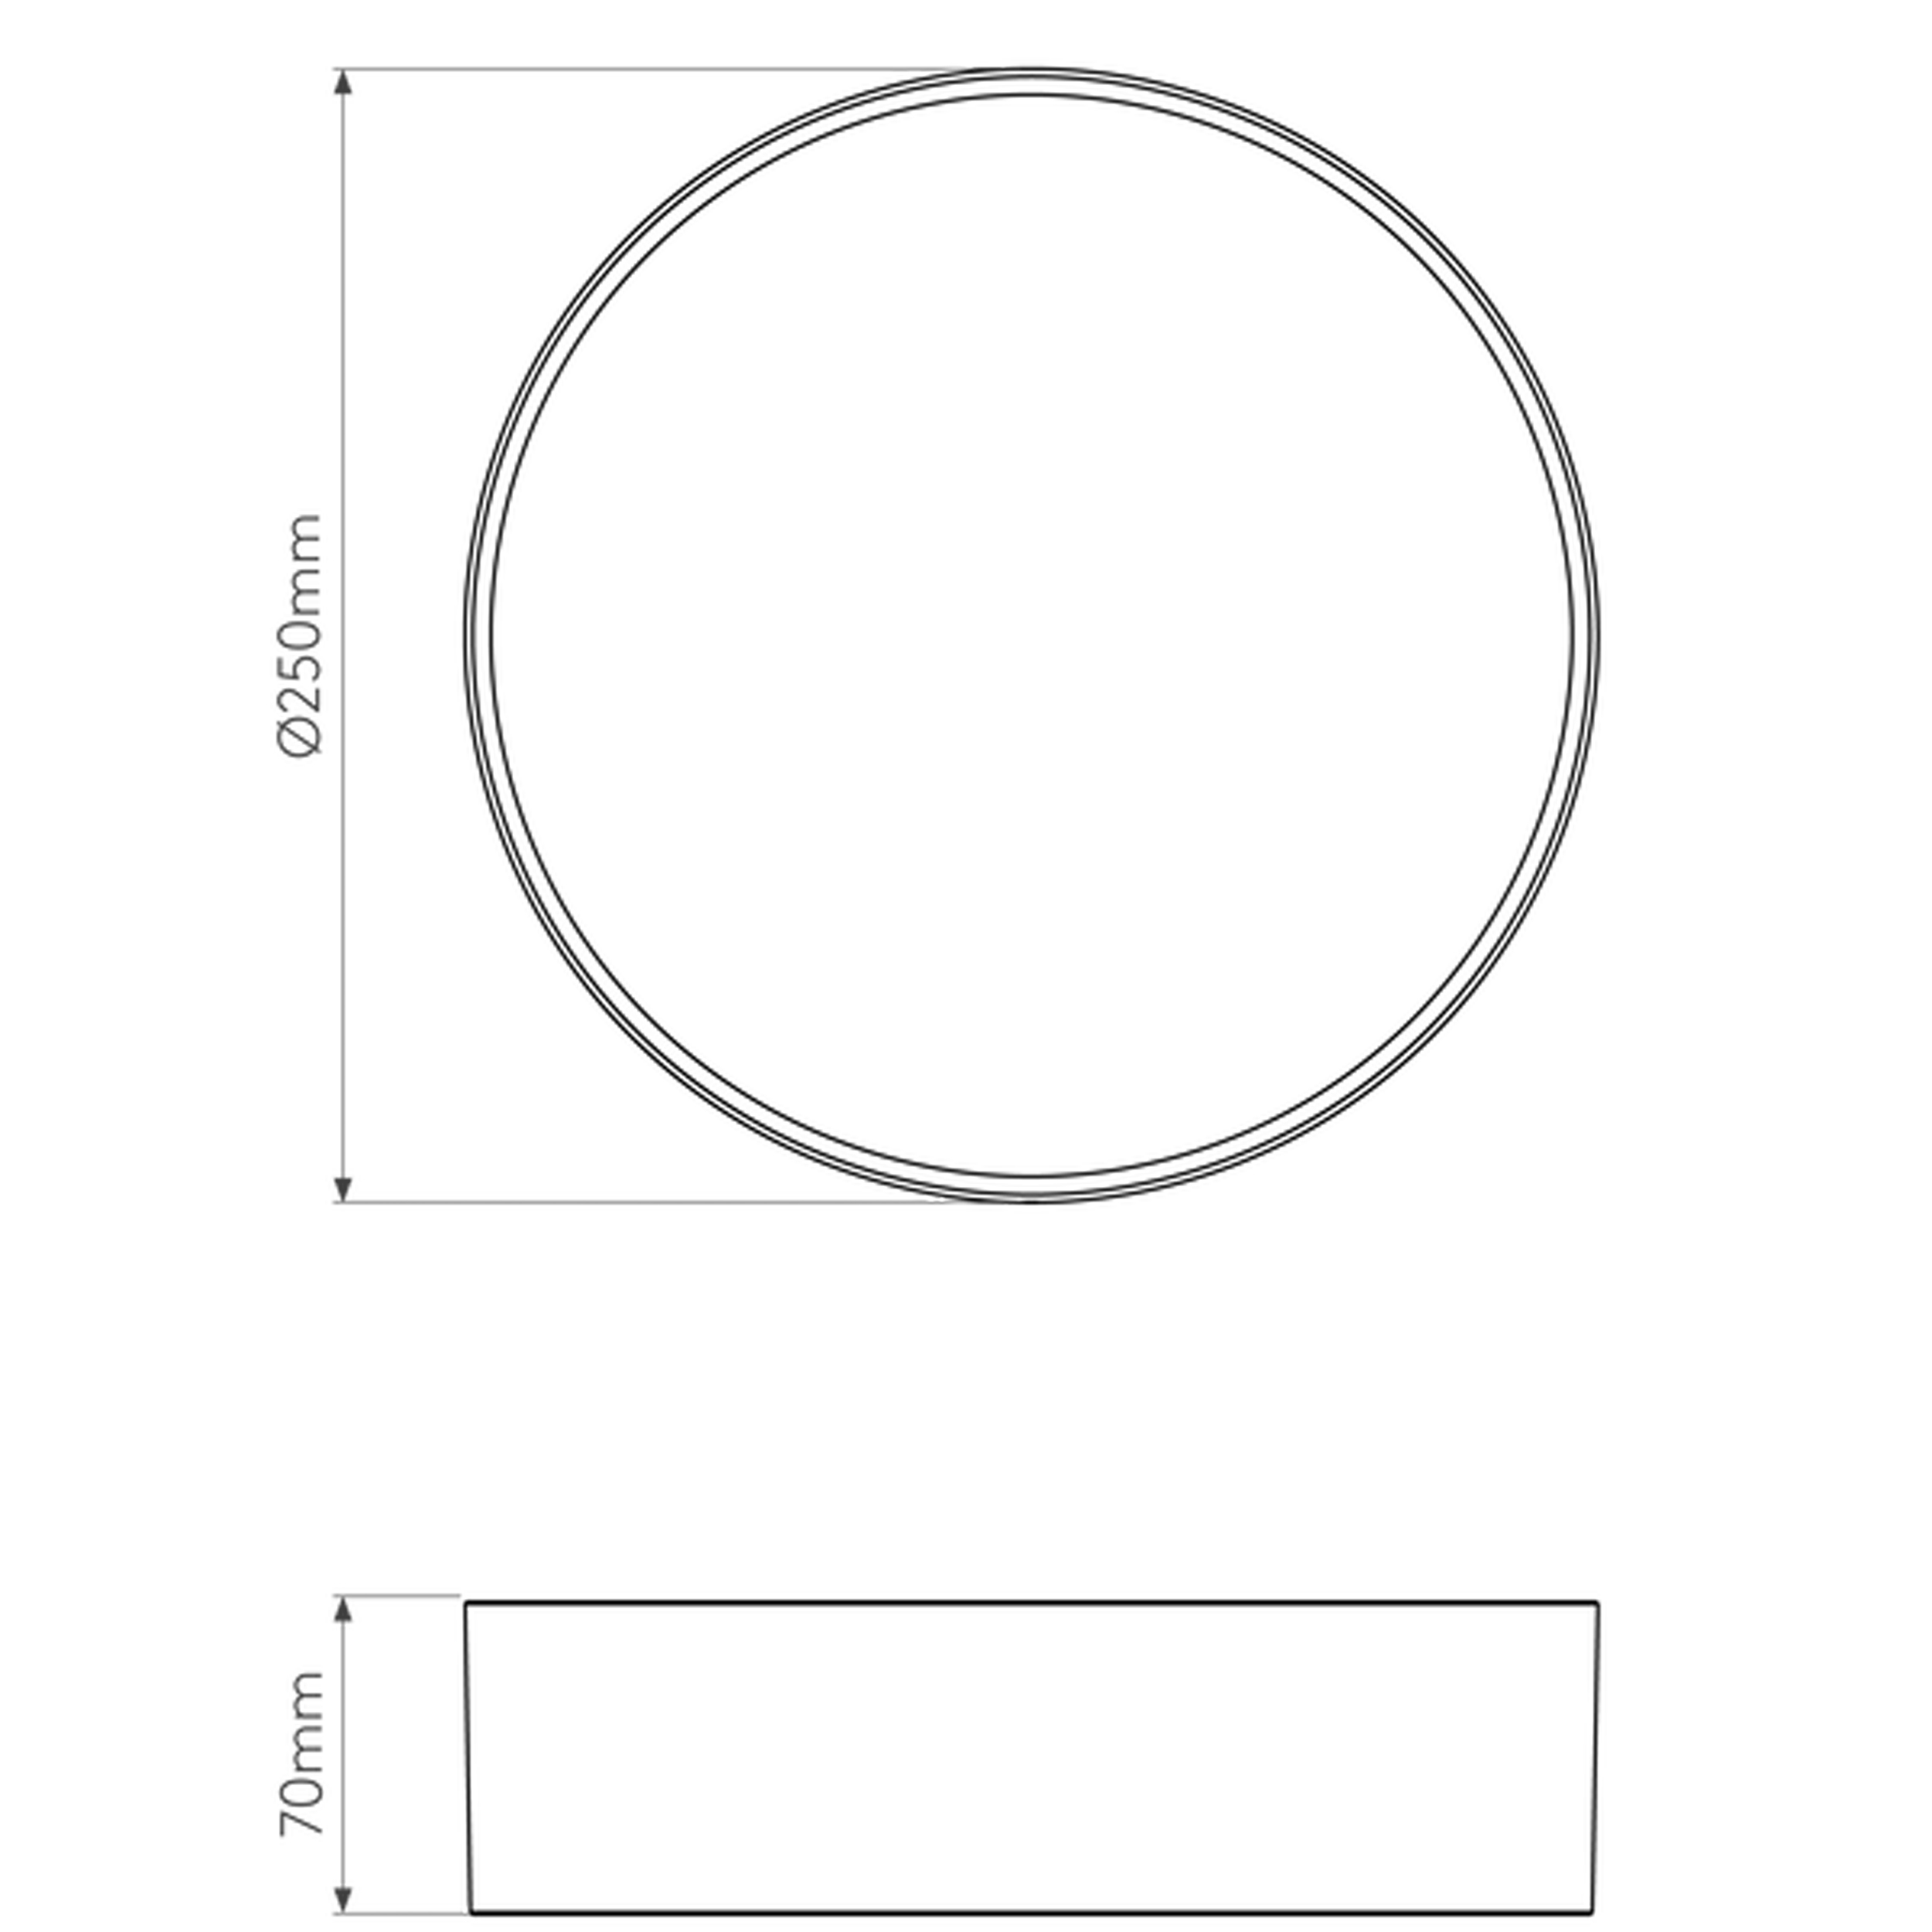 Astro Kea 250 Round Wall Light Line Drawing